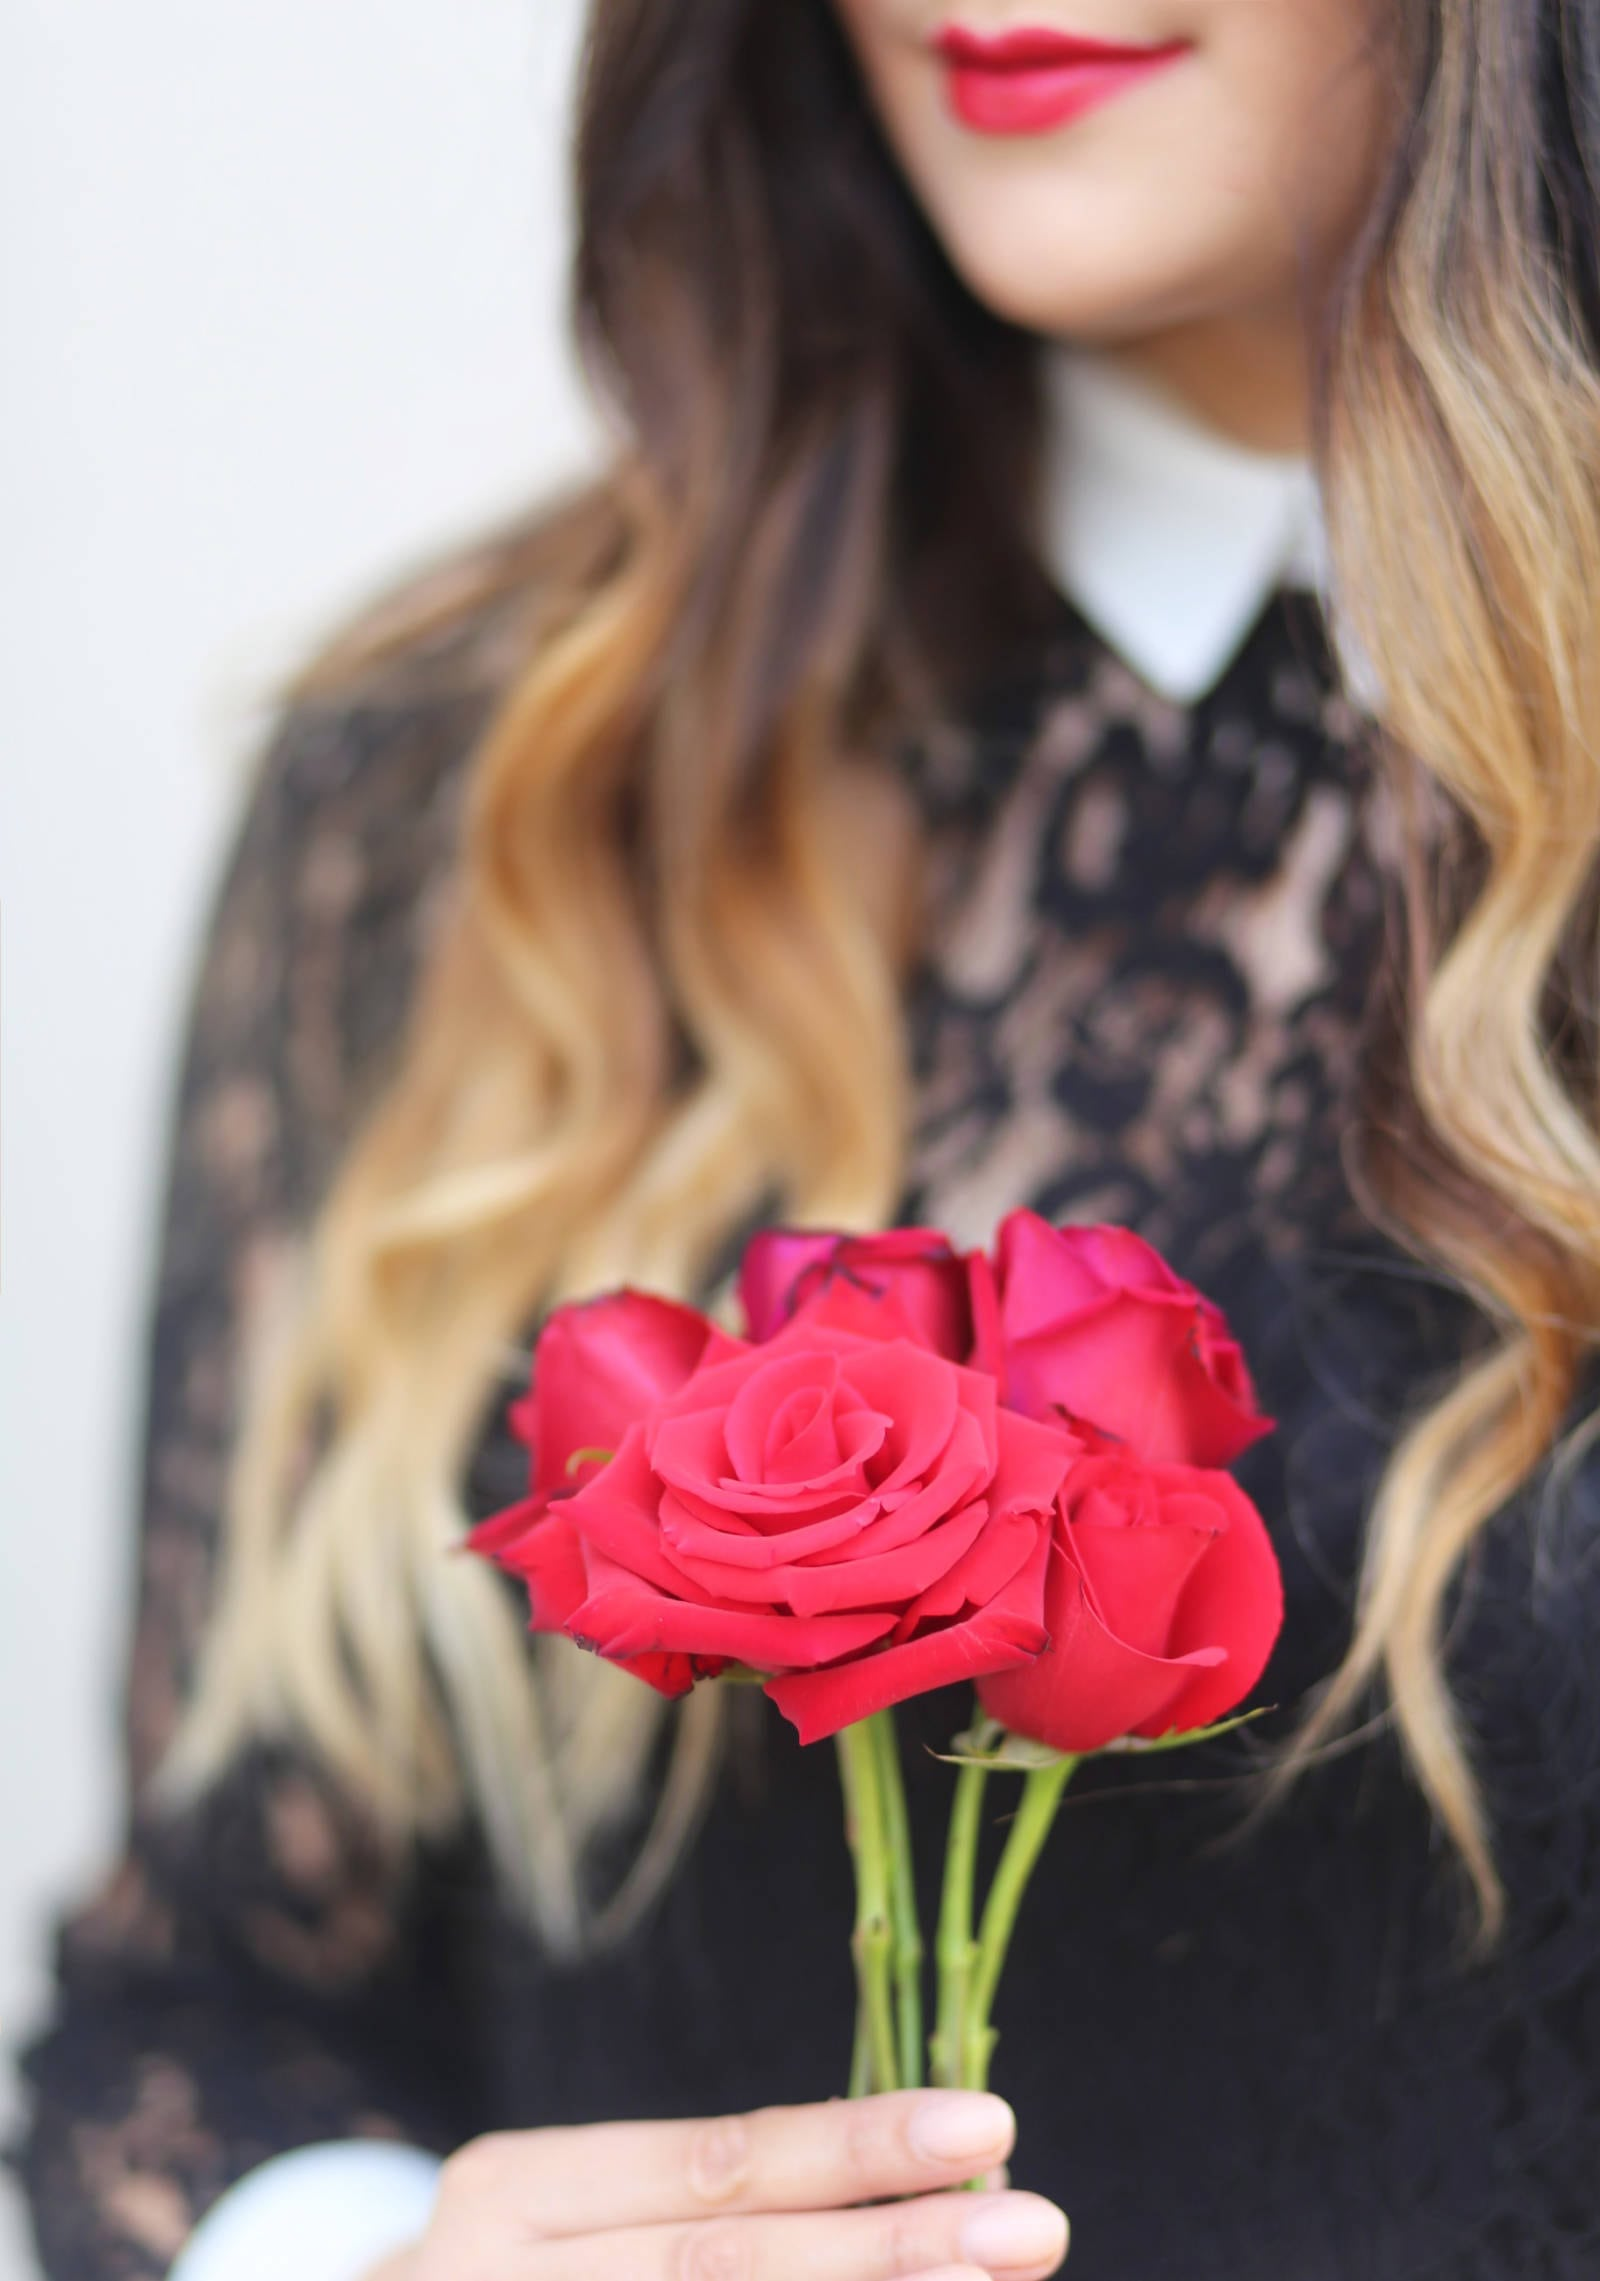 Details of Forever 21 black lace dress for a Valentine's Day look.